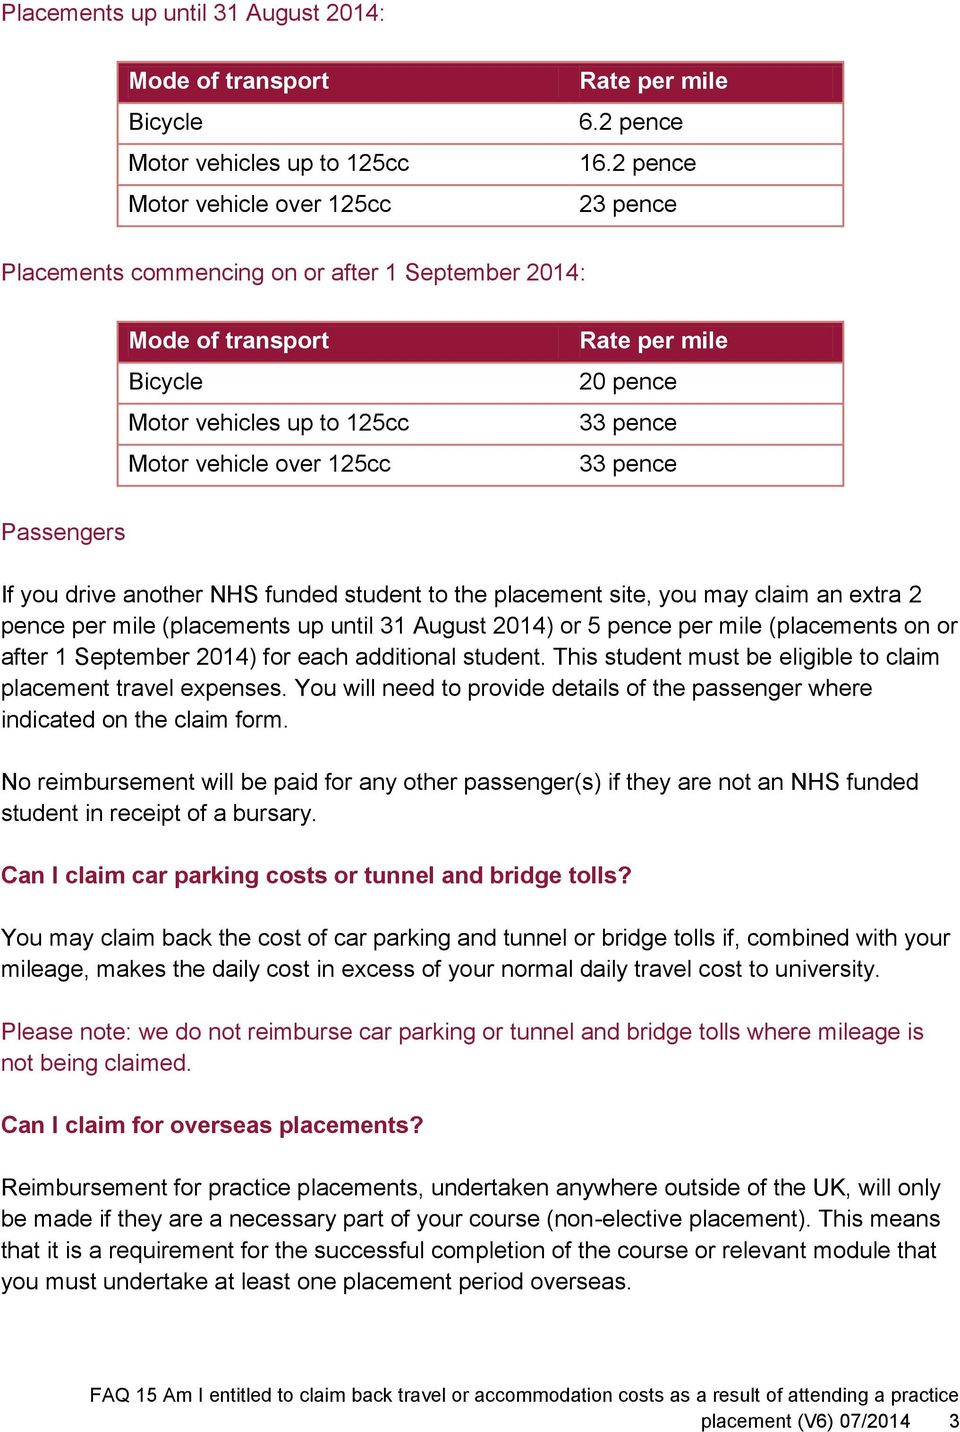 If you drive another NHS funded student to the placement site, you may claim an extra 2 pence per mile (placements up until 31 August 2014) or 5 pence per mile (placements on or after 1 September